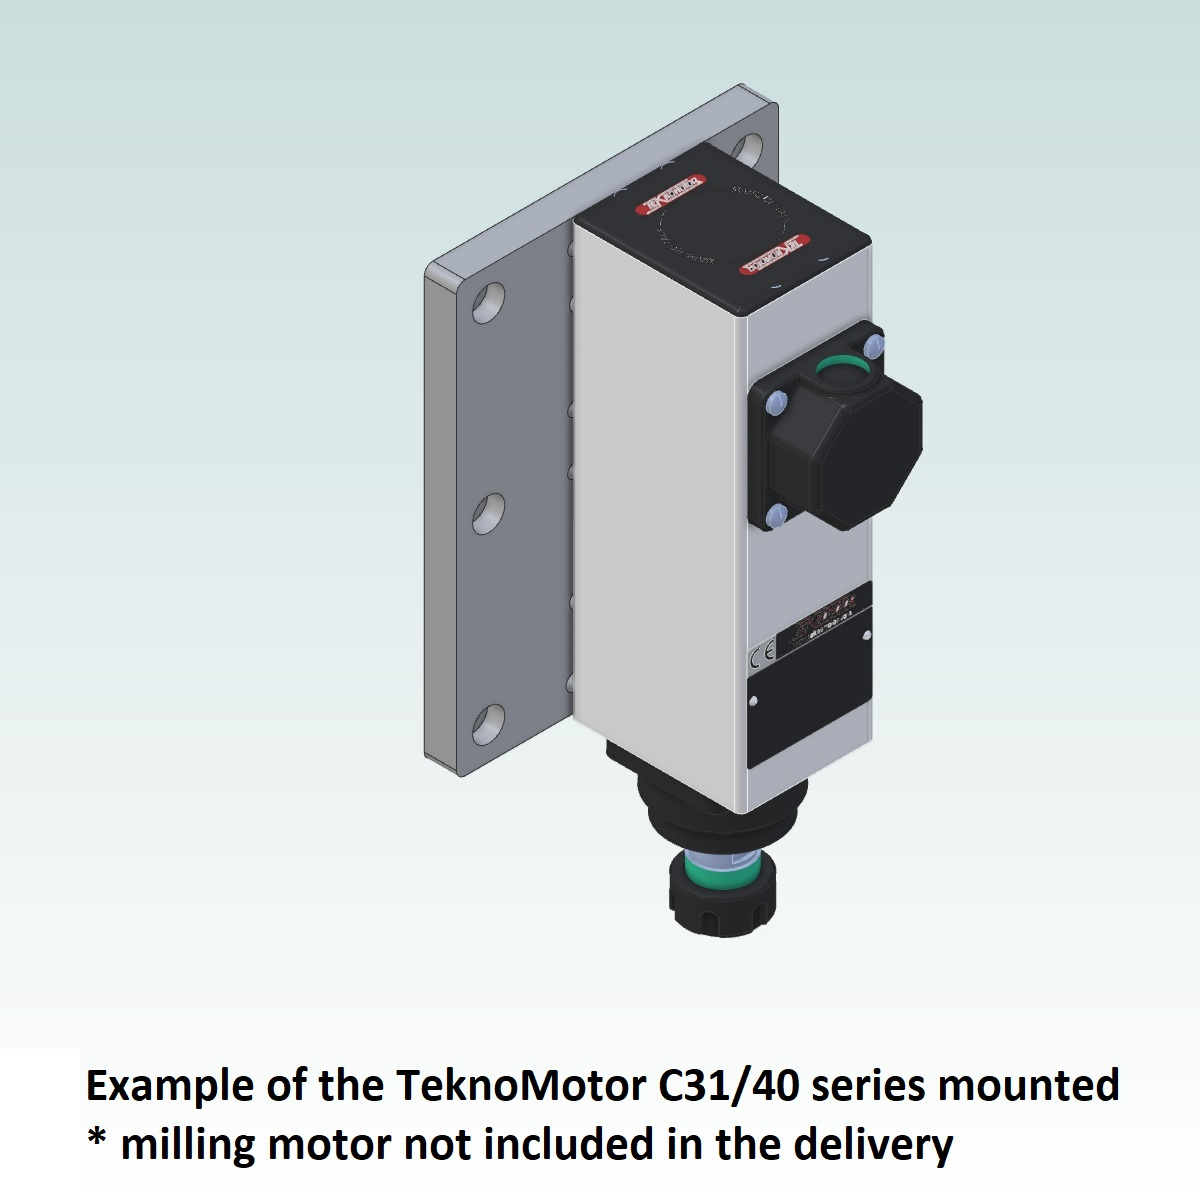 8995 teknomotor mountplate for 40x160 profile with c3140 mounted